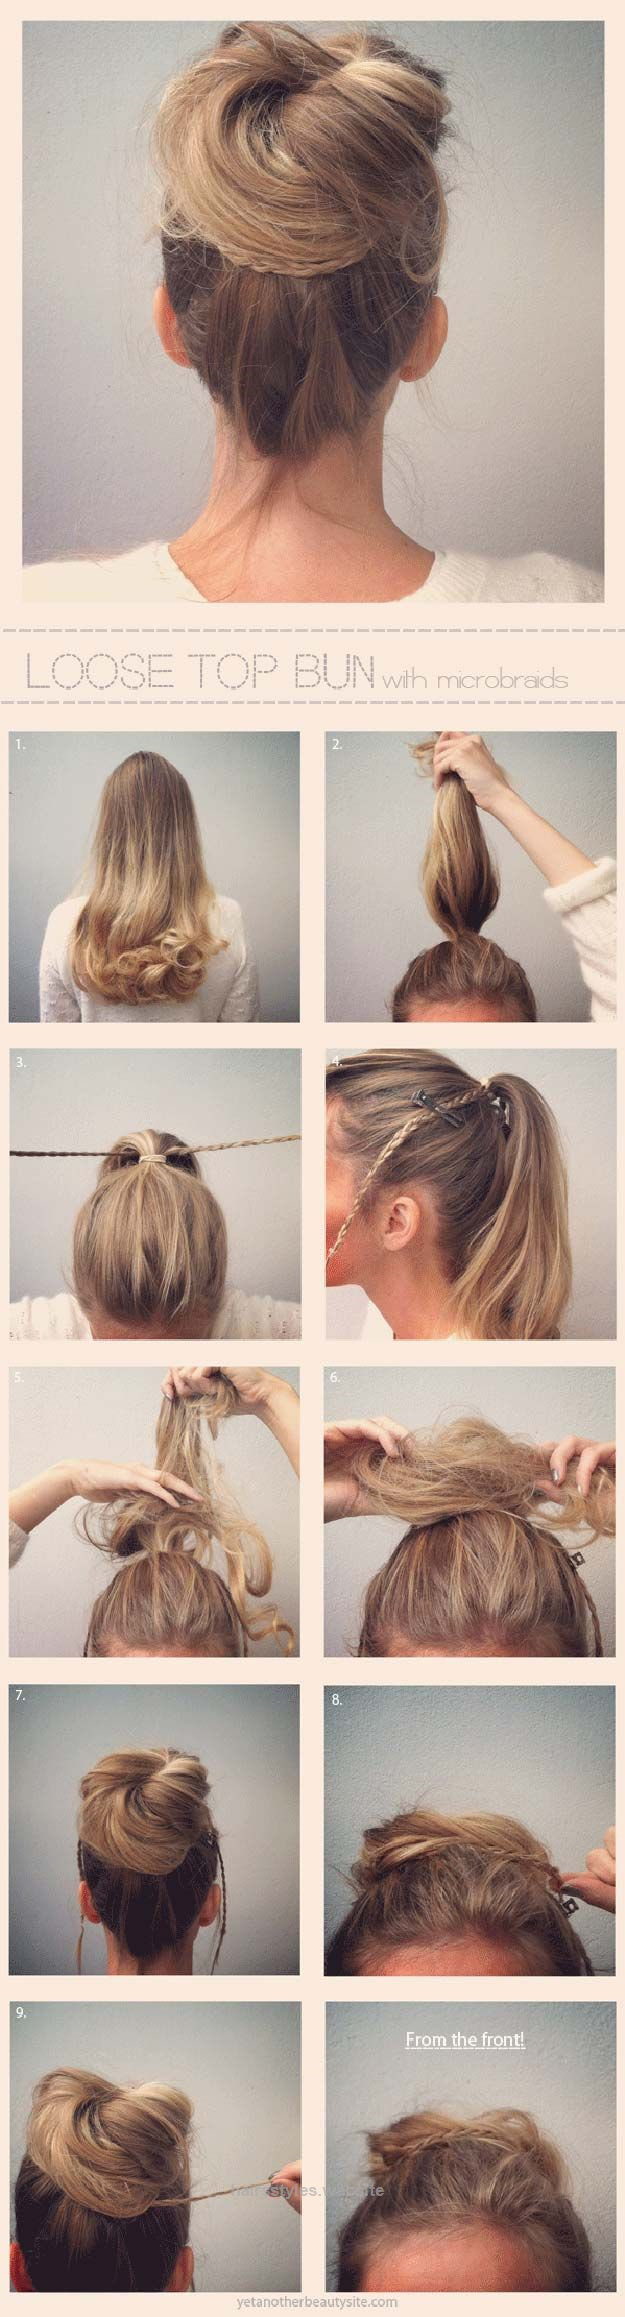 Easy hairstyles for work loose top bun quick and easy hairstyles